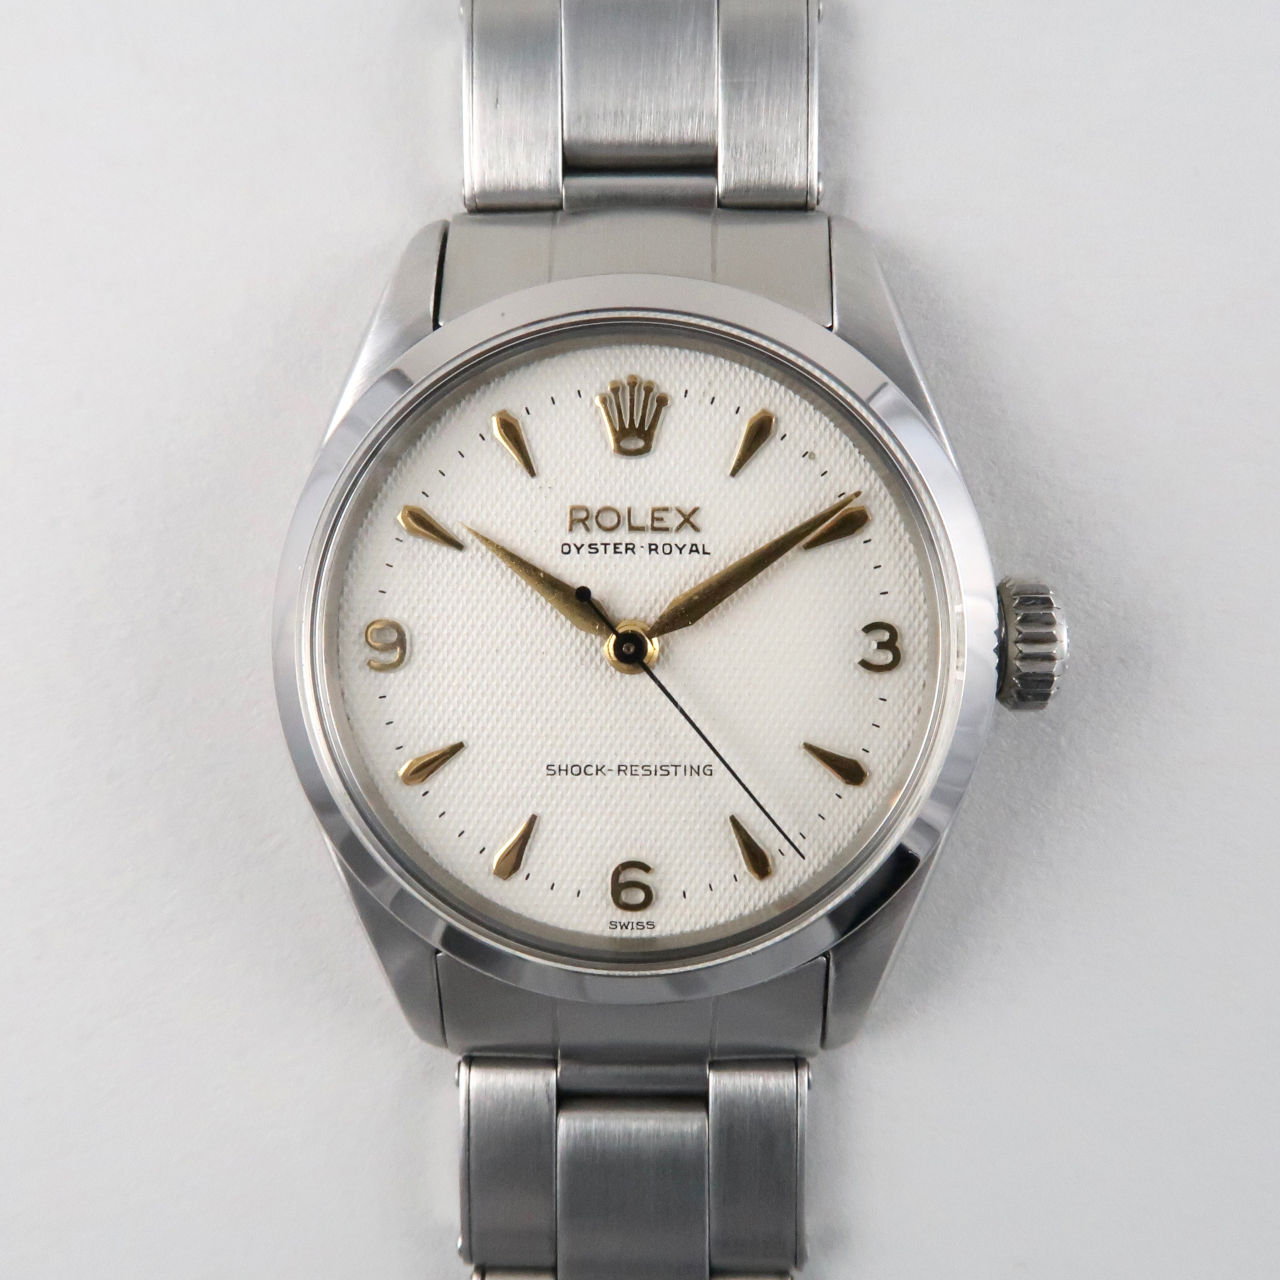 Rolex Oyster Royal Ref. 6444 steel vintage wristwatch, dated 1956